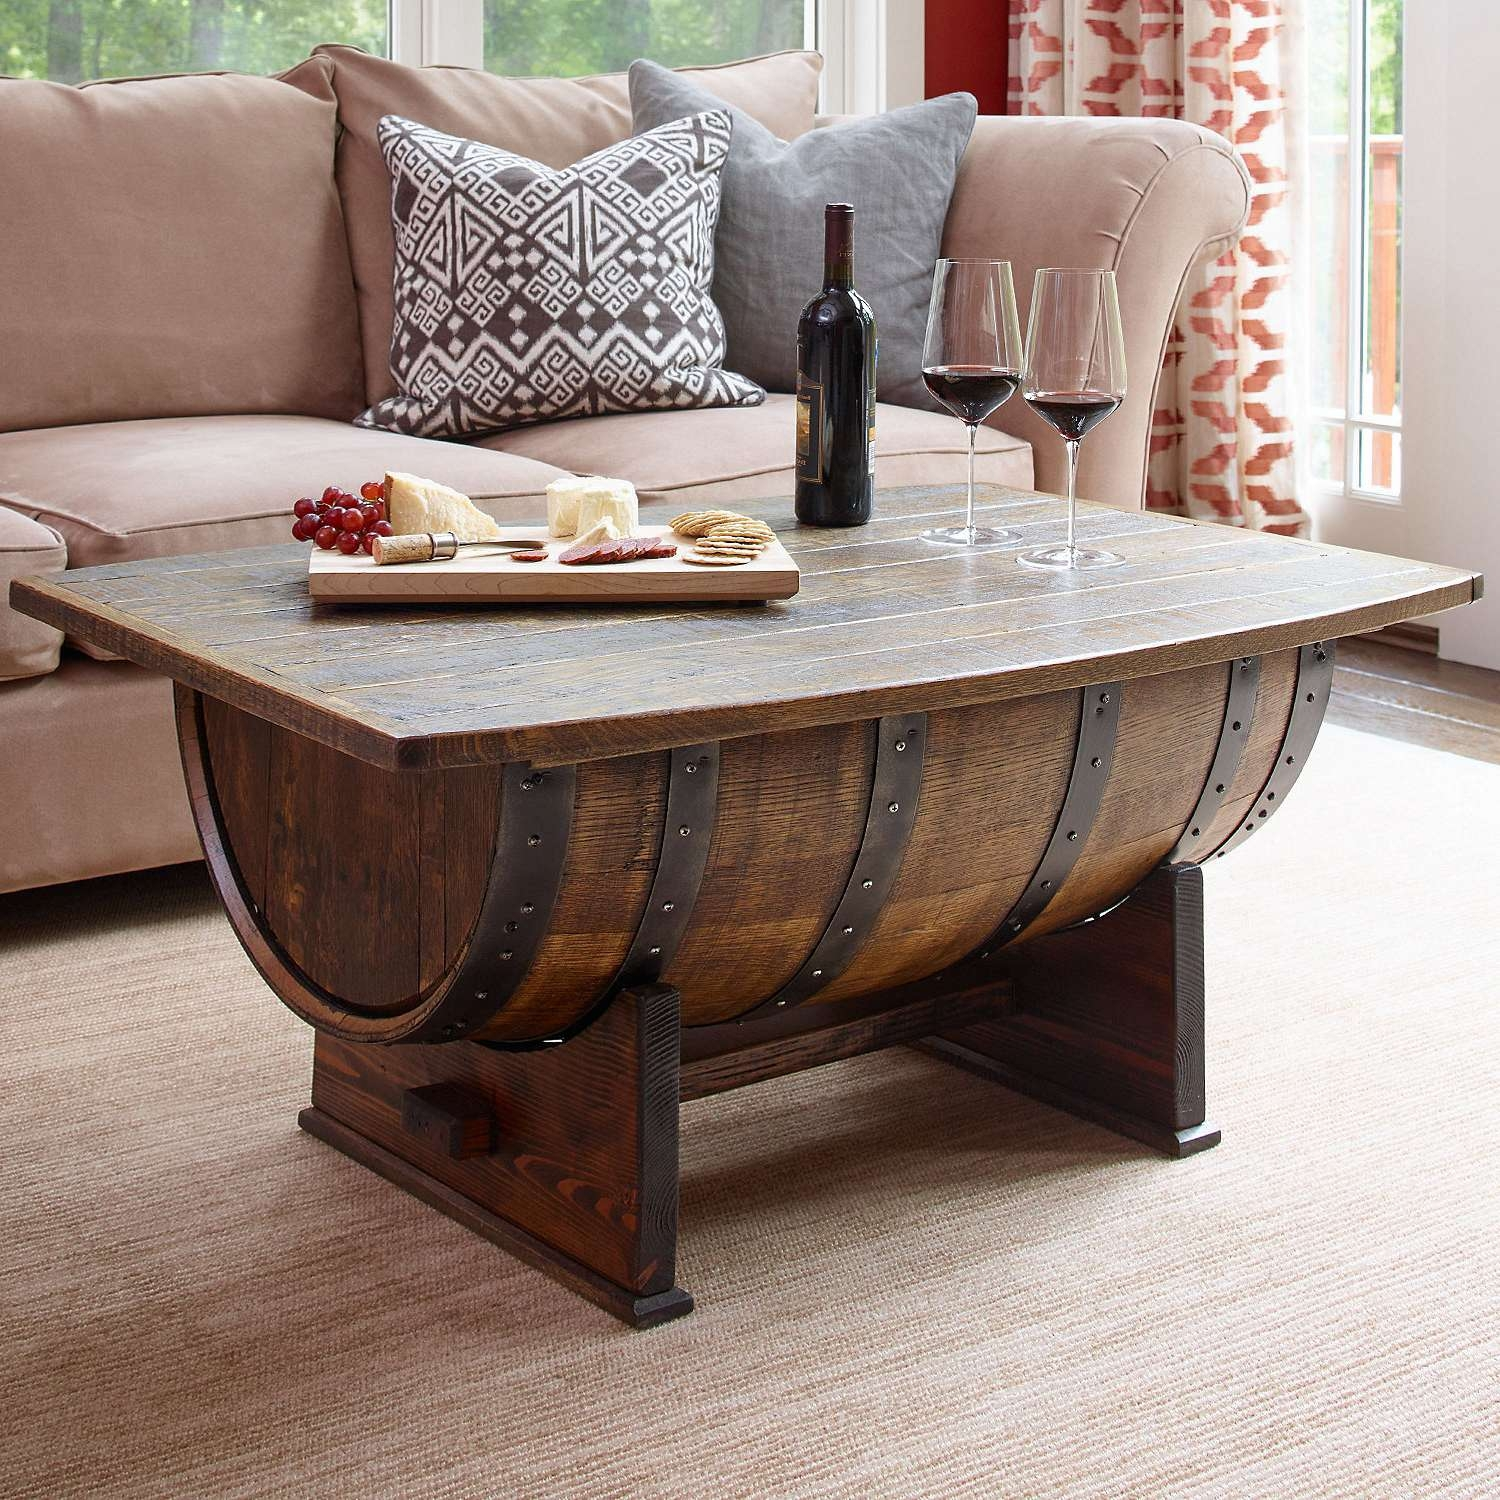 Handmade Vintage Oak Whiskey Barrel Coffee Table – Wine Enthusiast For Recent Dining Coffee Tables (View 6 of 20)